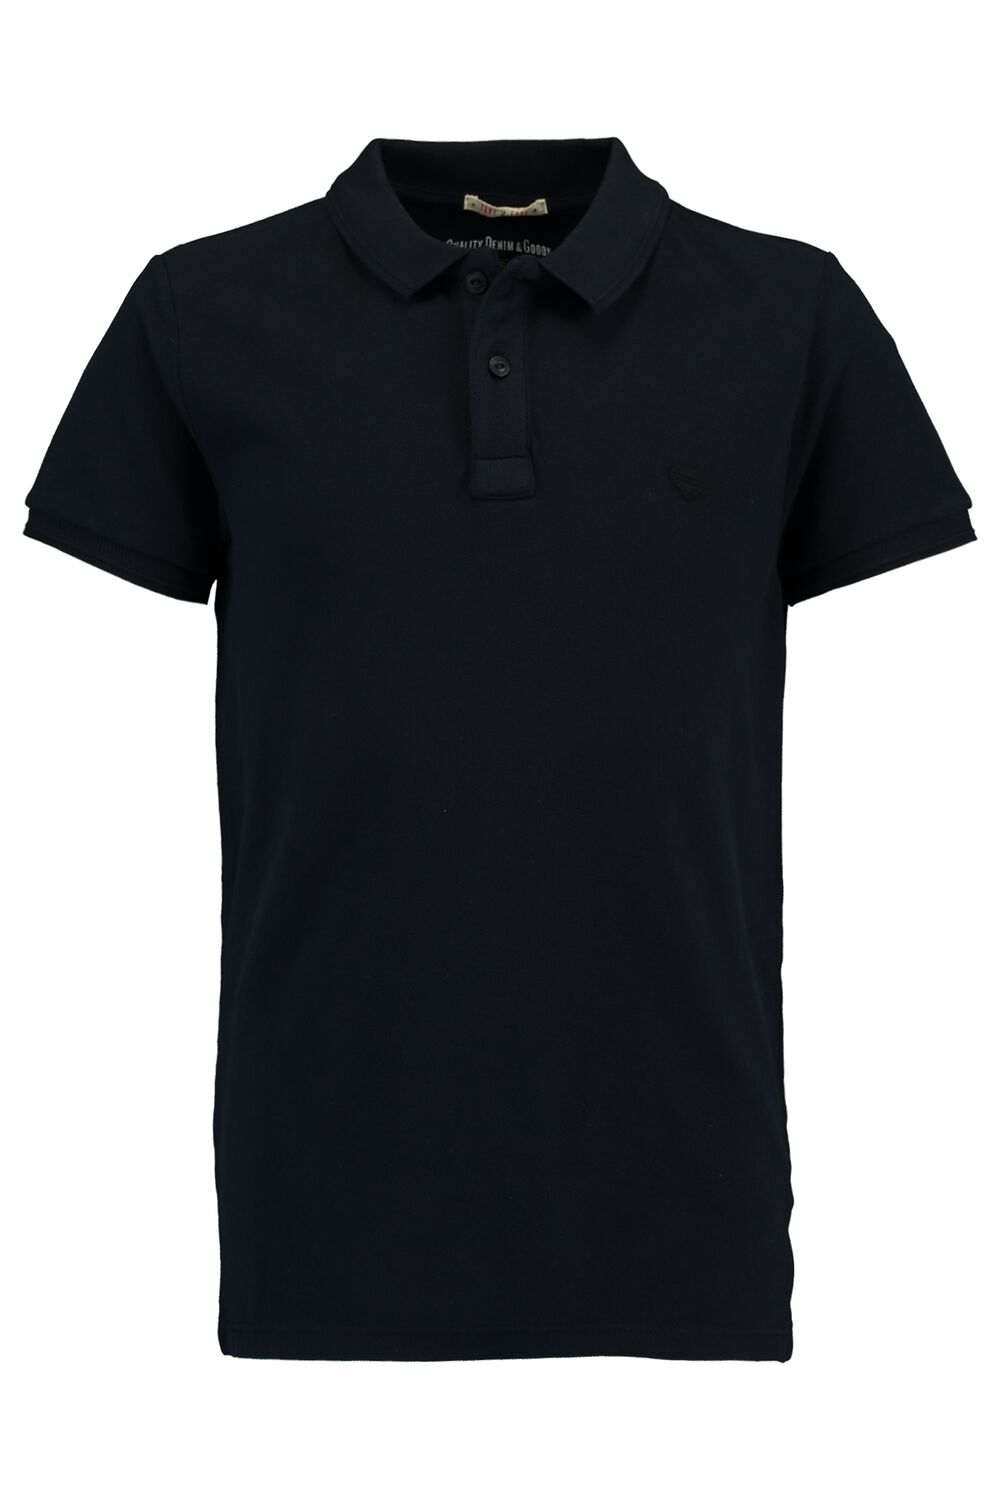 America Today Jongens Polo Elliot Blauw